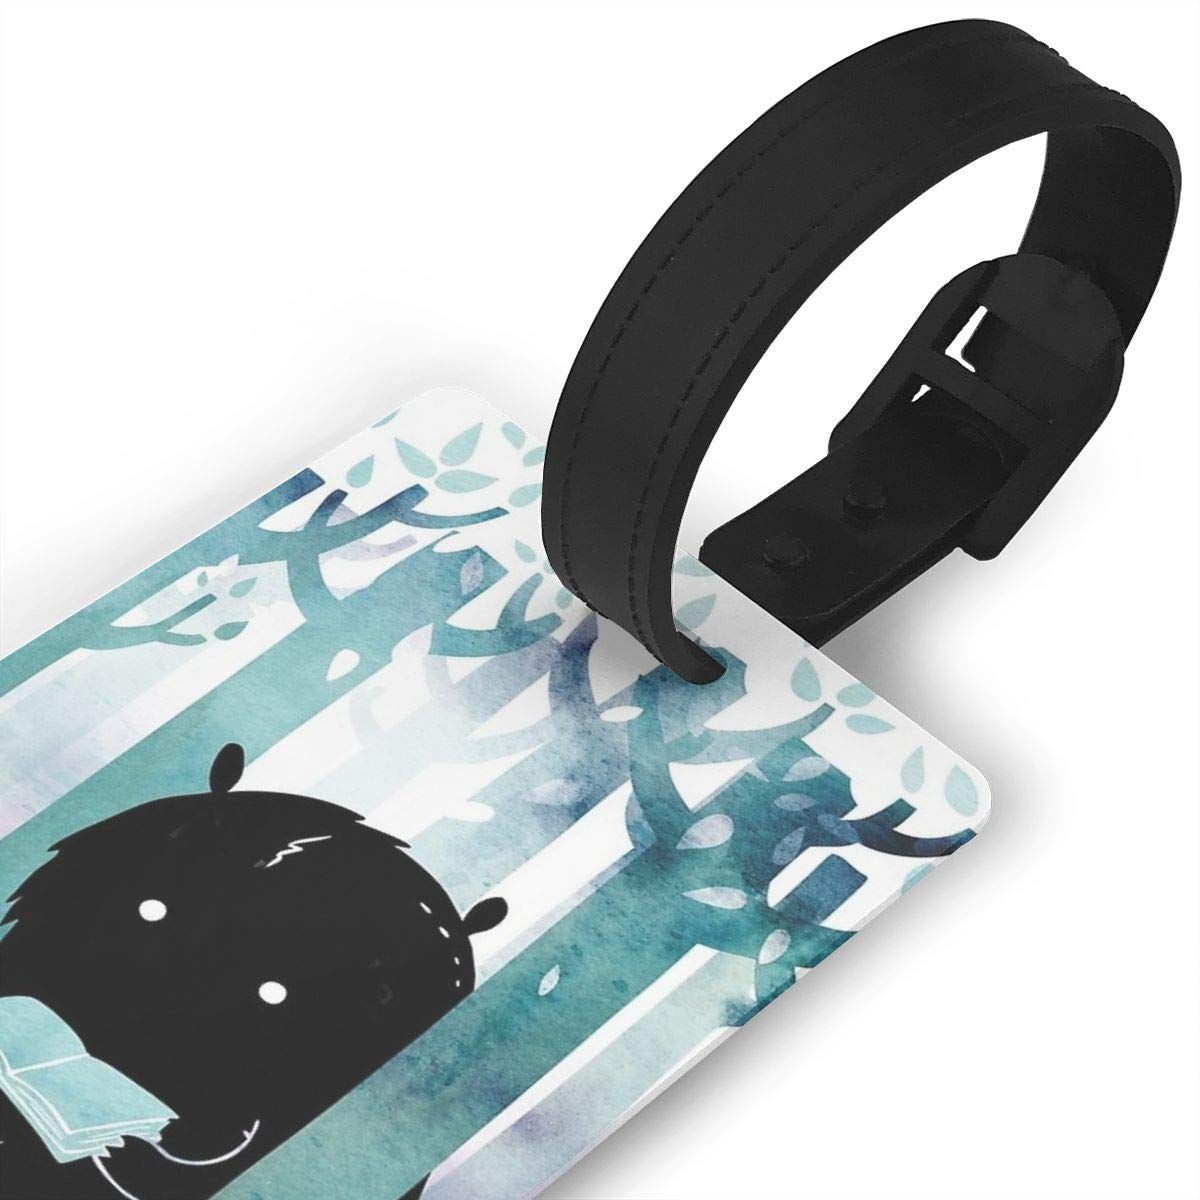 A Quiet Spot Luggage Tags Suitcase Labels Bag Travel Accessories Set of 2